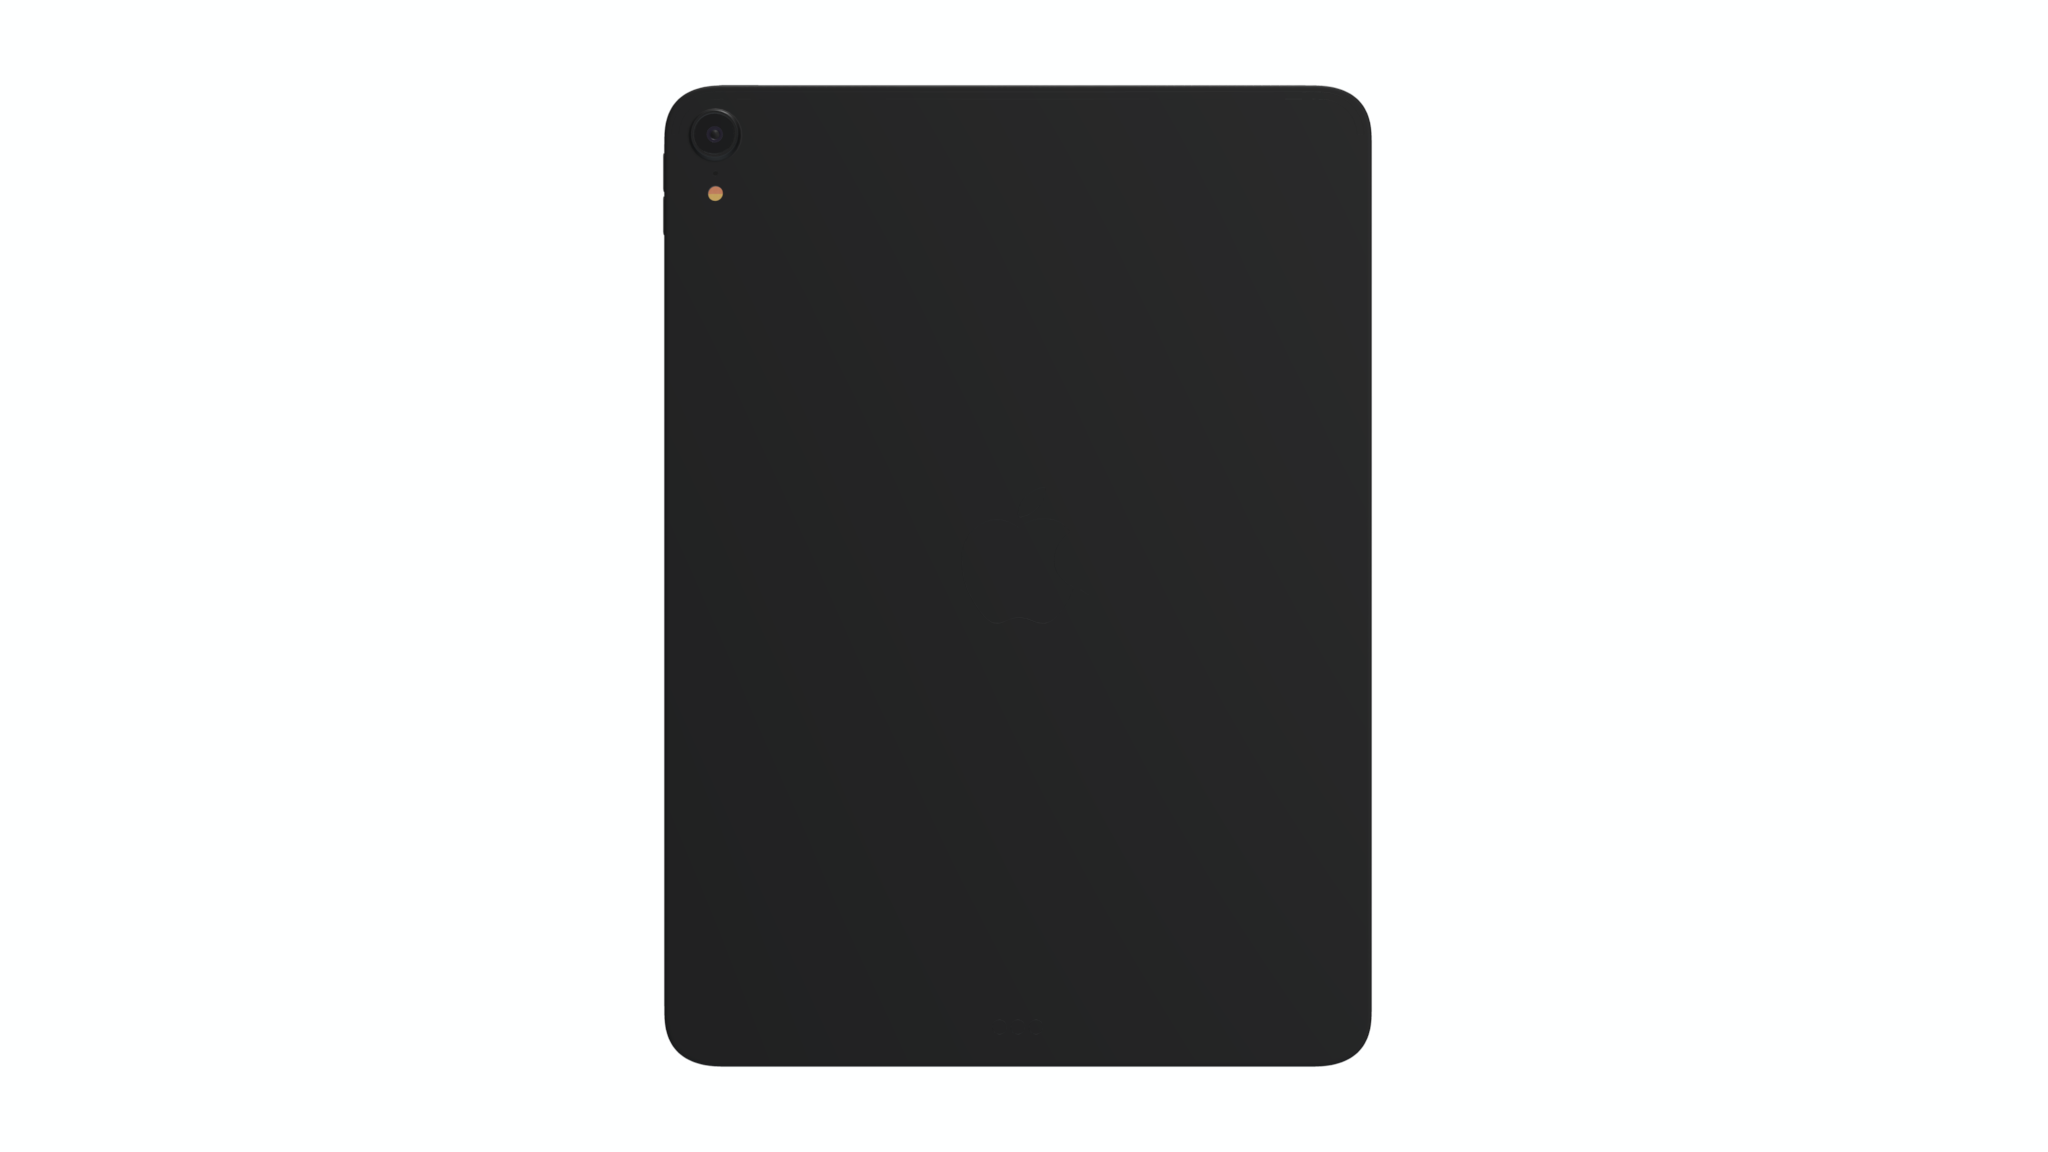 iPad Mockup, back view